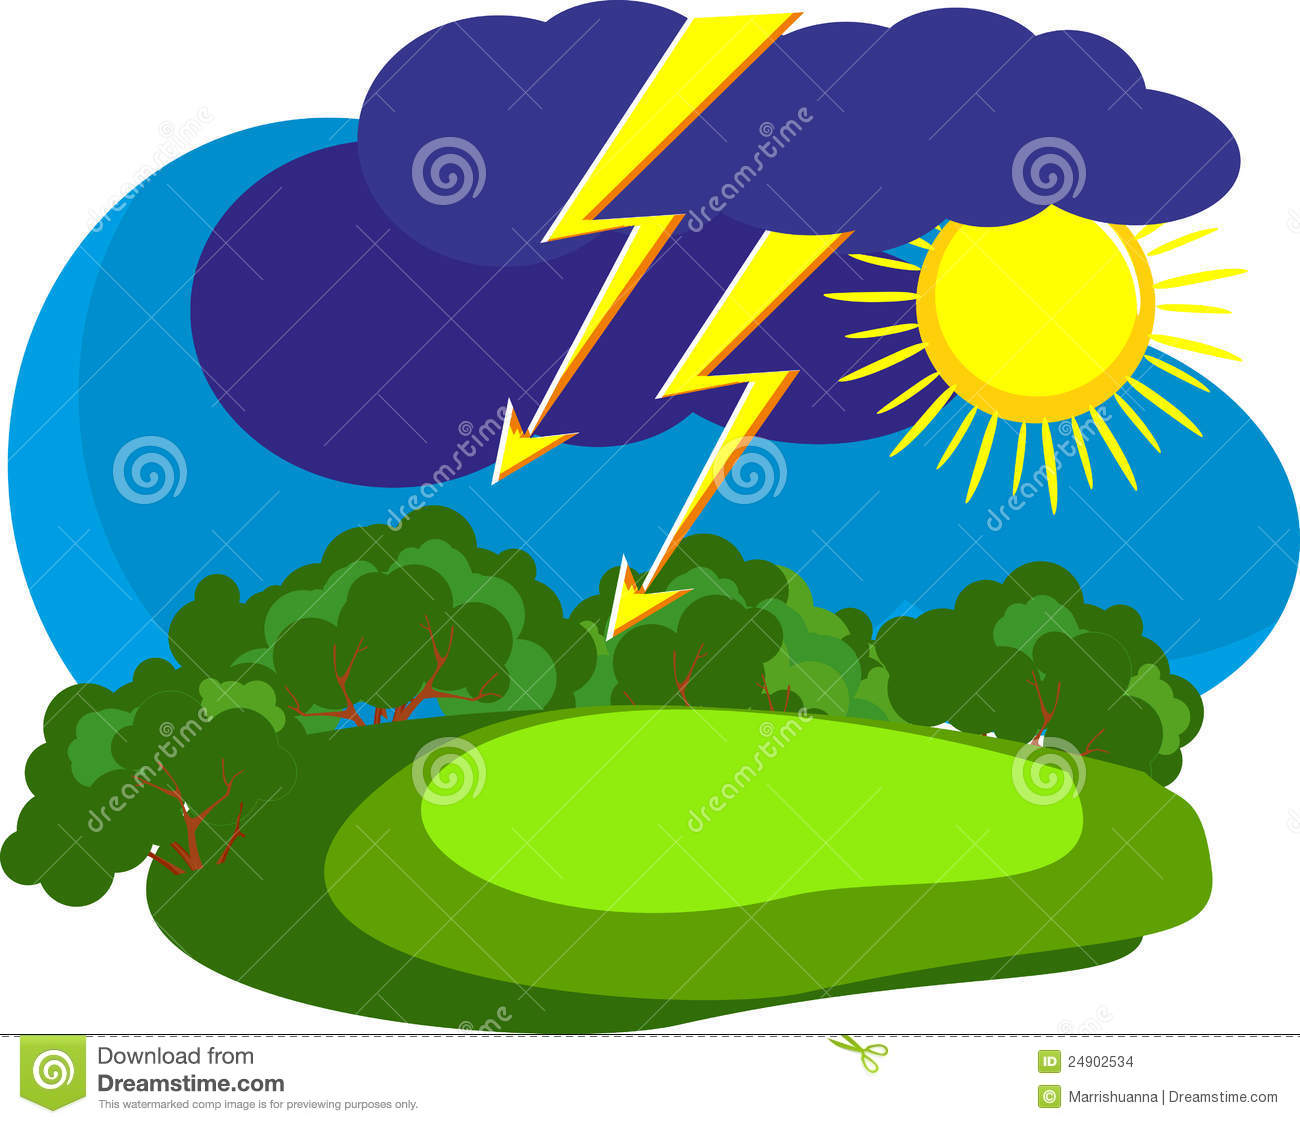 Force Of Nature Played Out In The Countryside Mentions Sky Sun Is Shining Cloud Came Running A Flash Lightning Storm